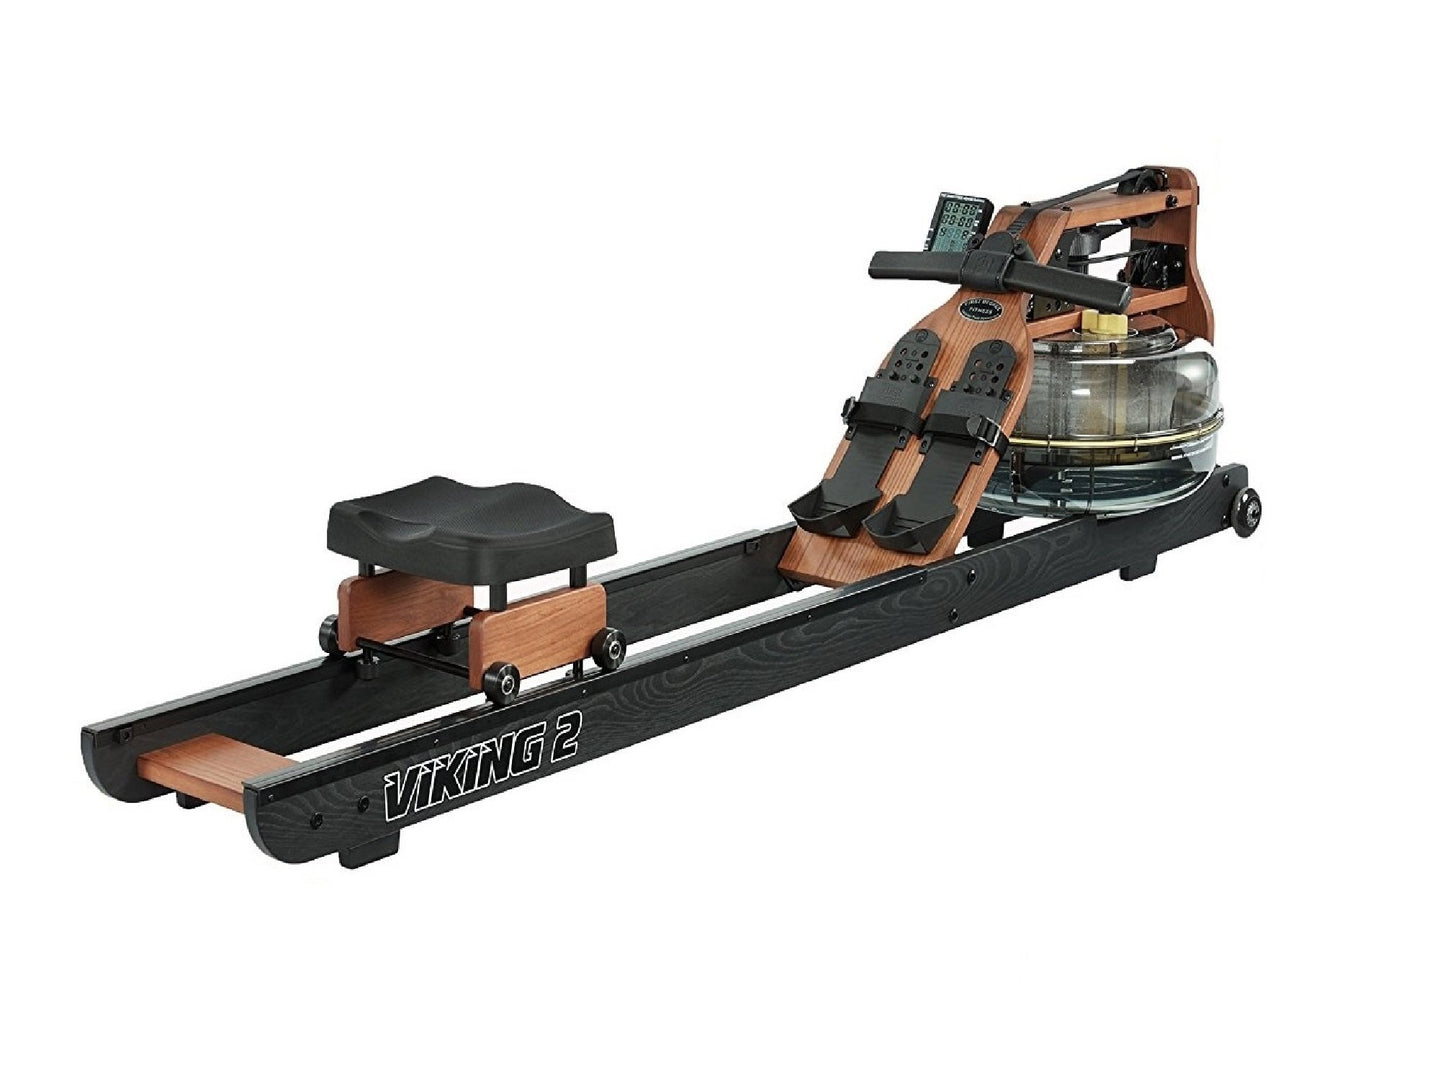 Viking 2 Plus Reserve Edition FLuid Rower by First Degree Fitness version